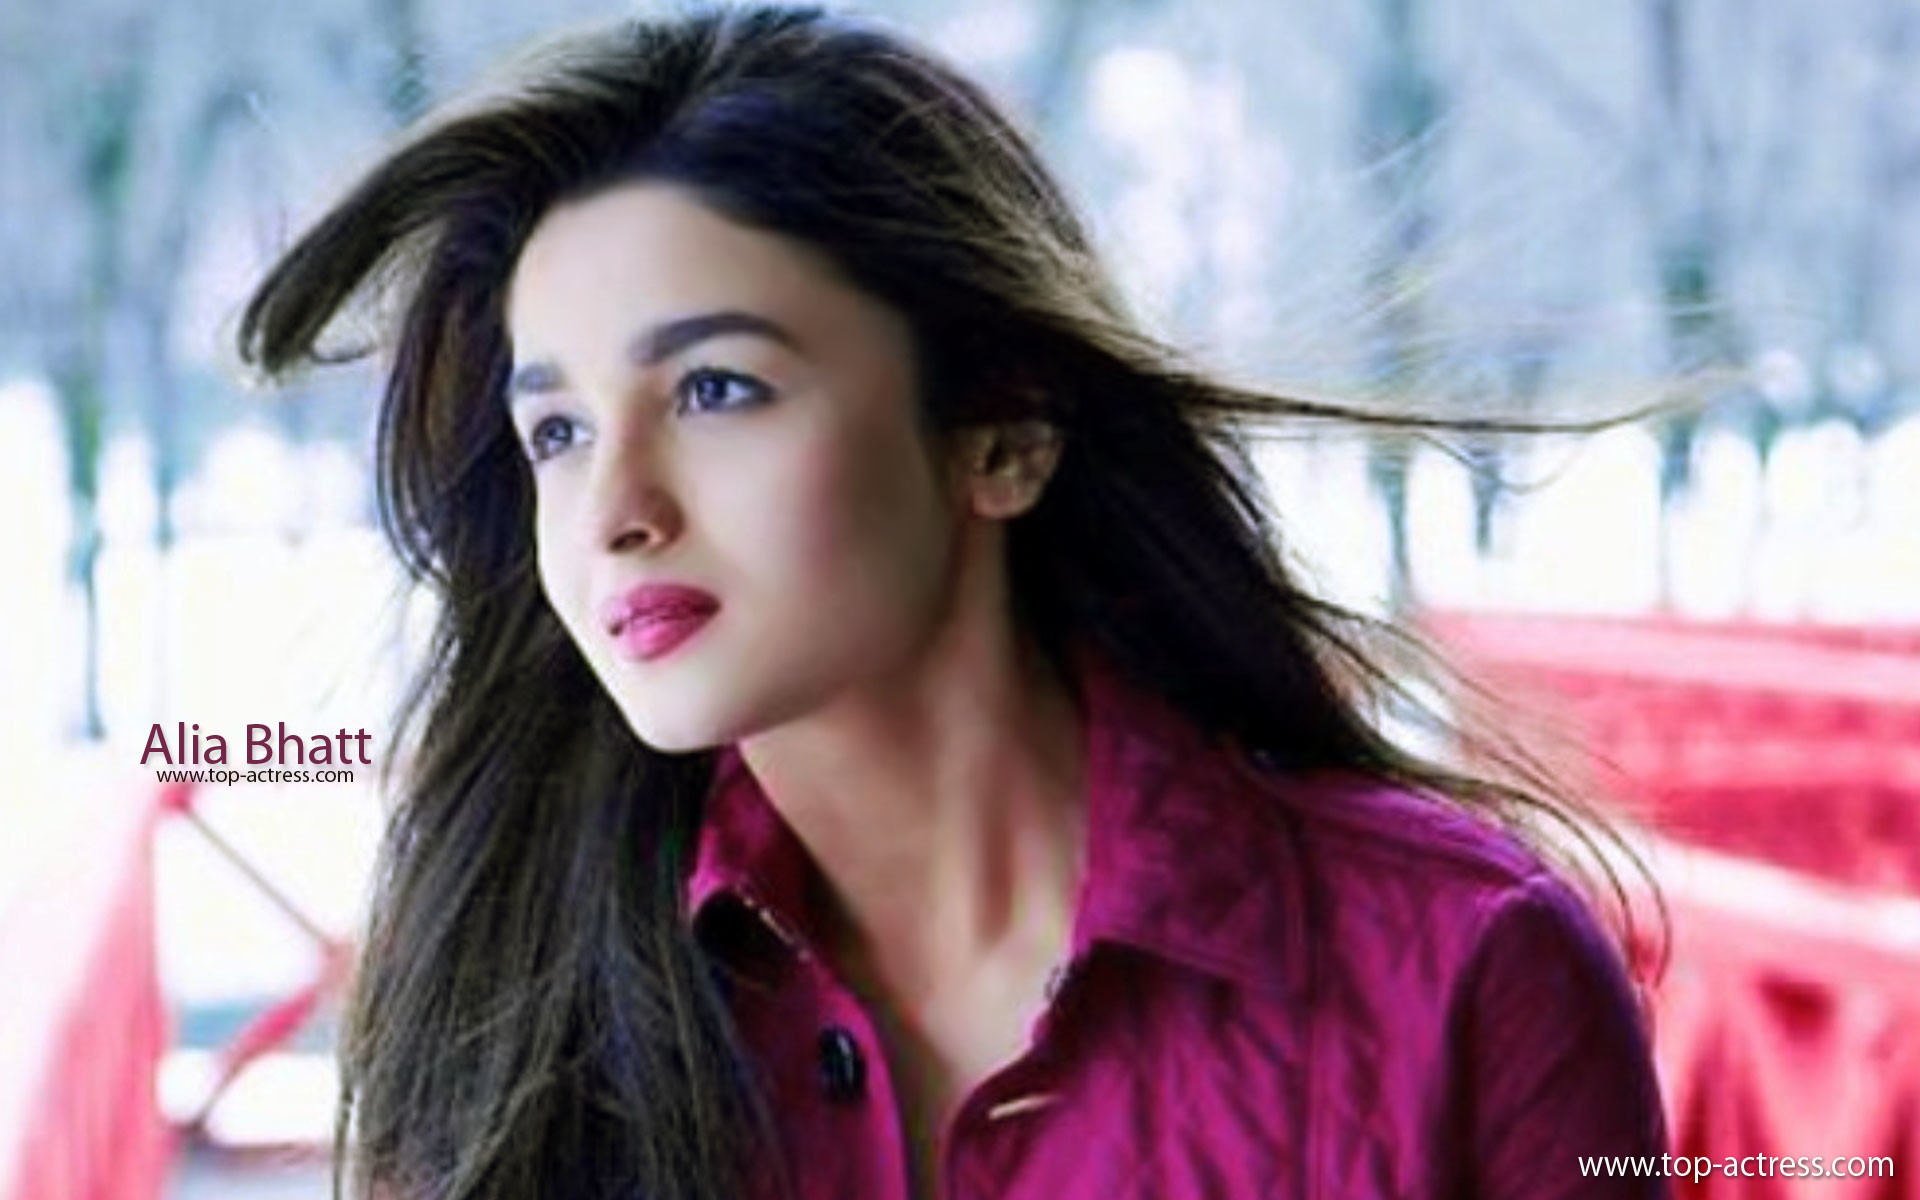 Related Wallpapers from Amy Lee. Alia Bhatt Latest Hd Wallpapers